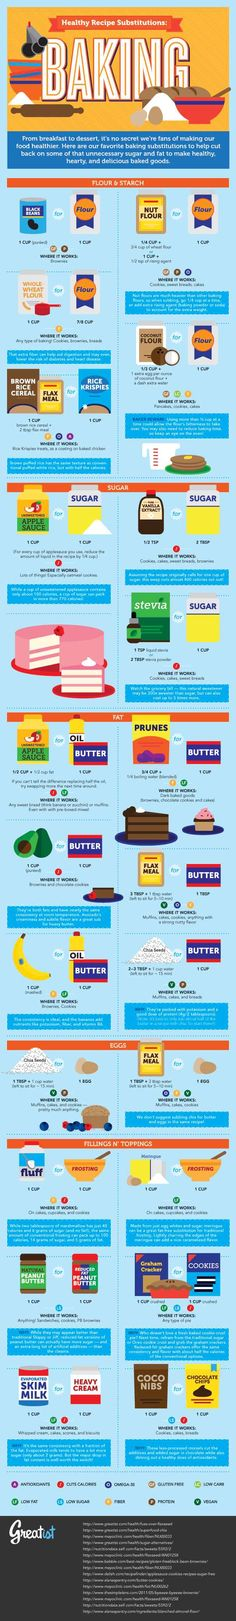 For healthy recipe substitutions.